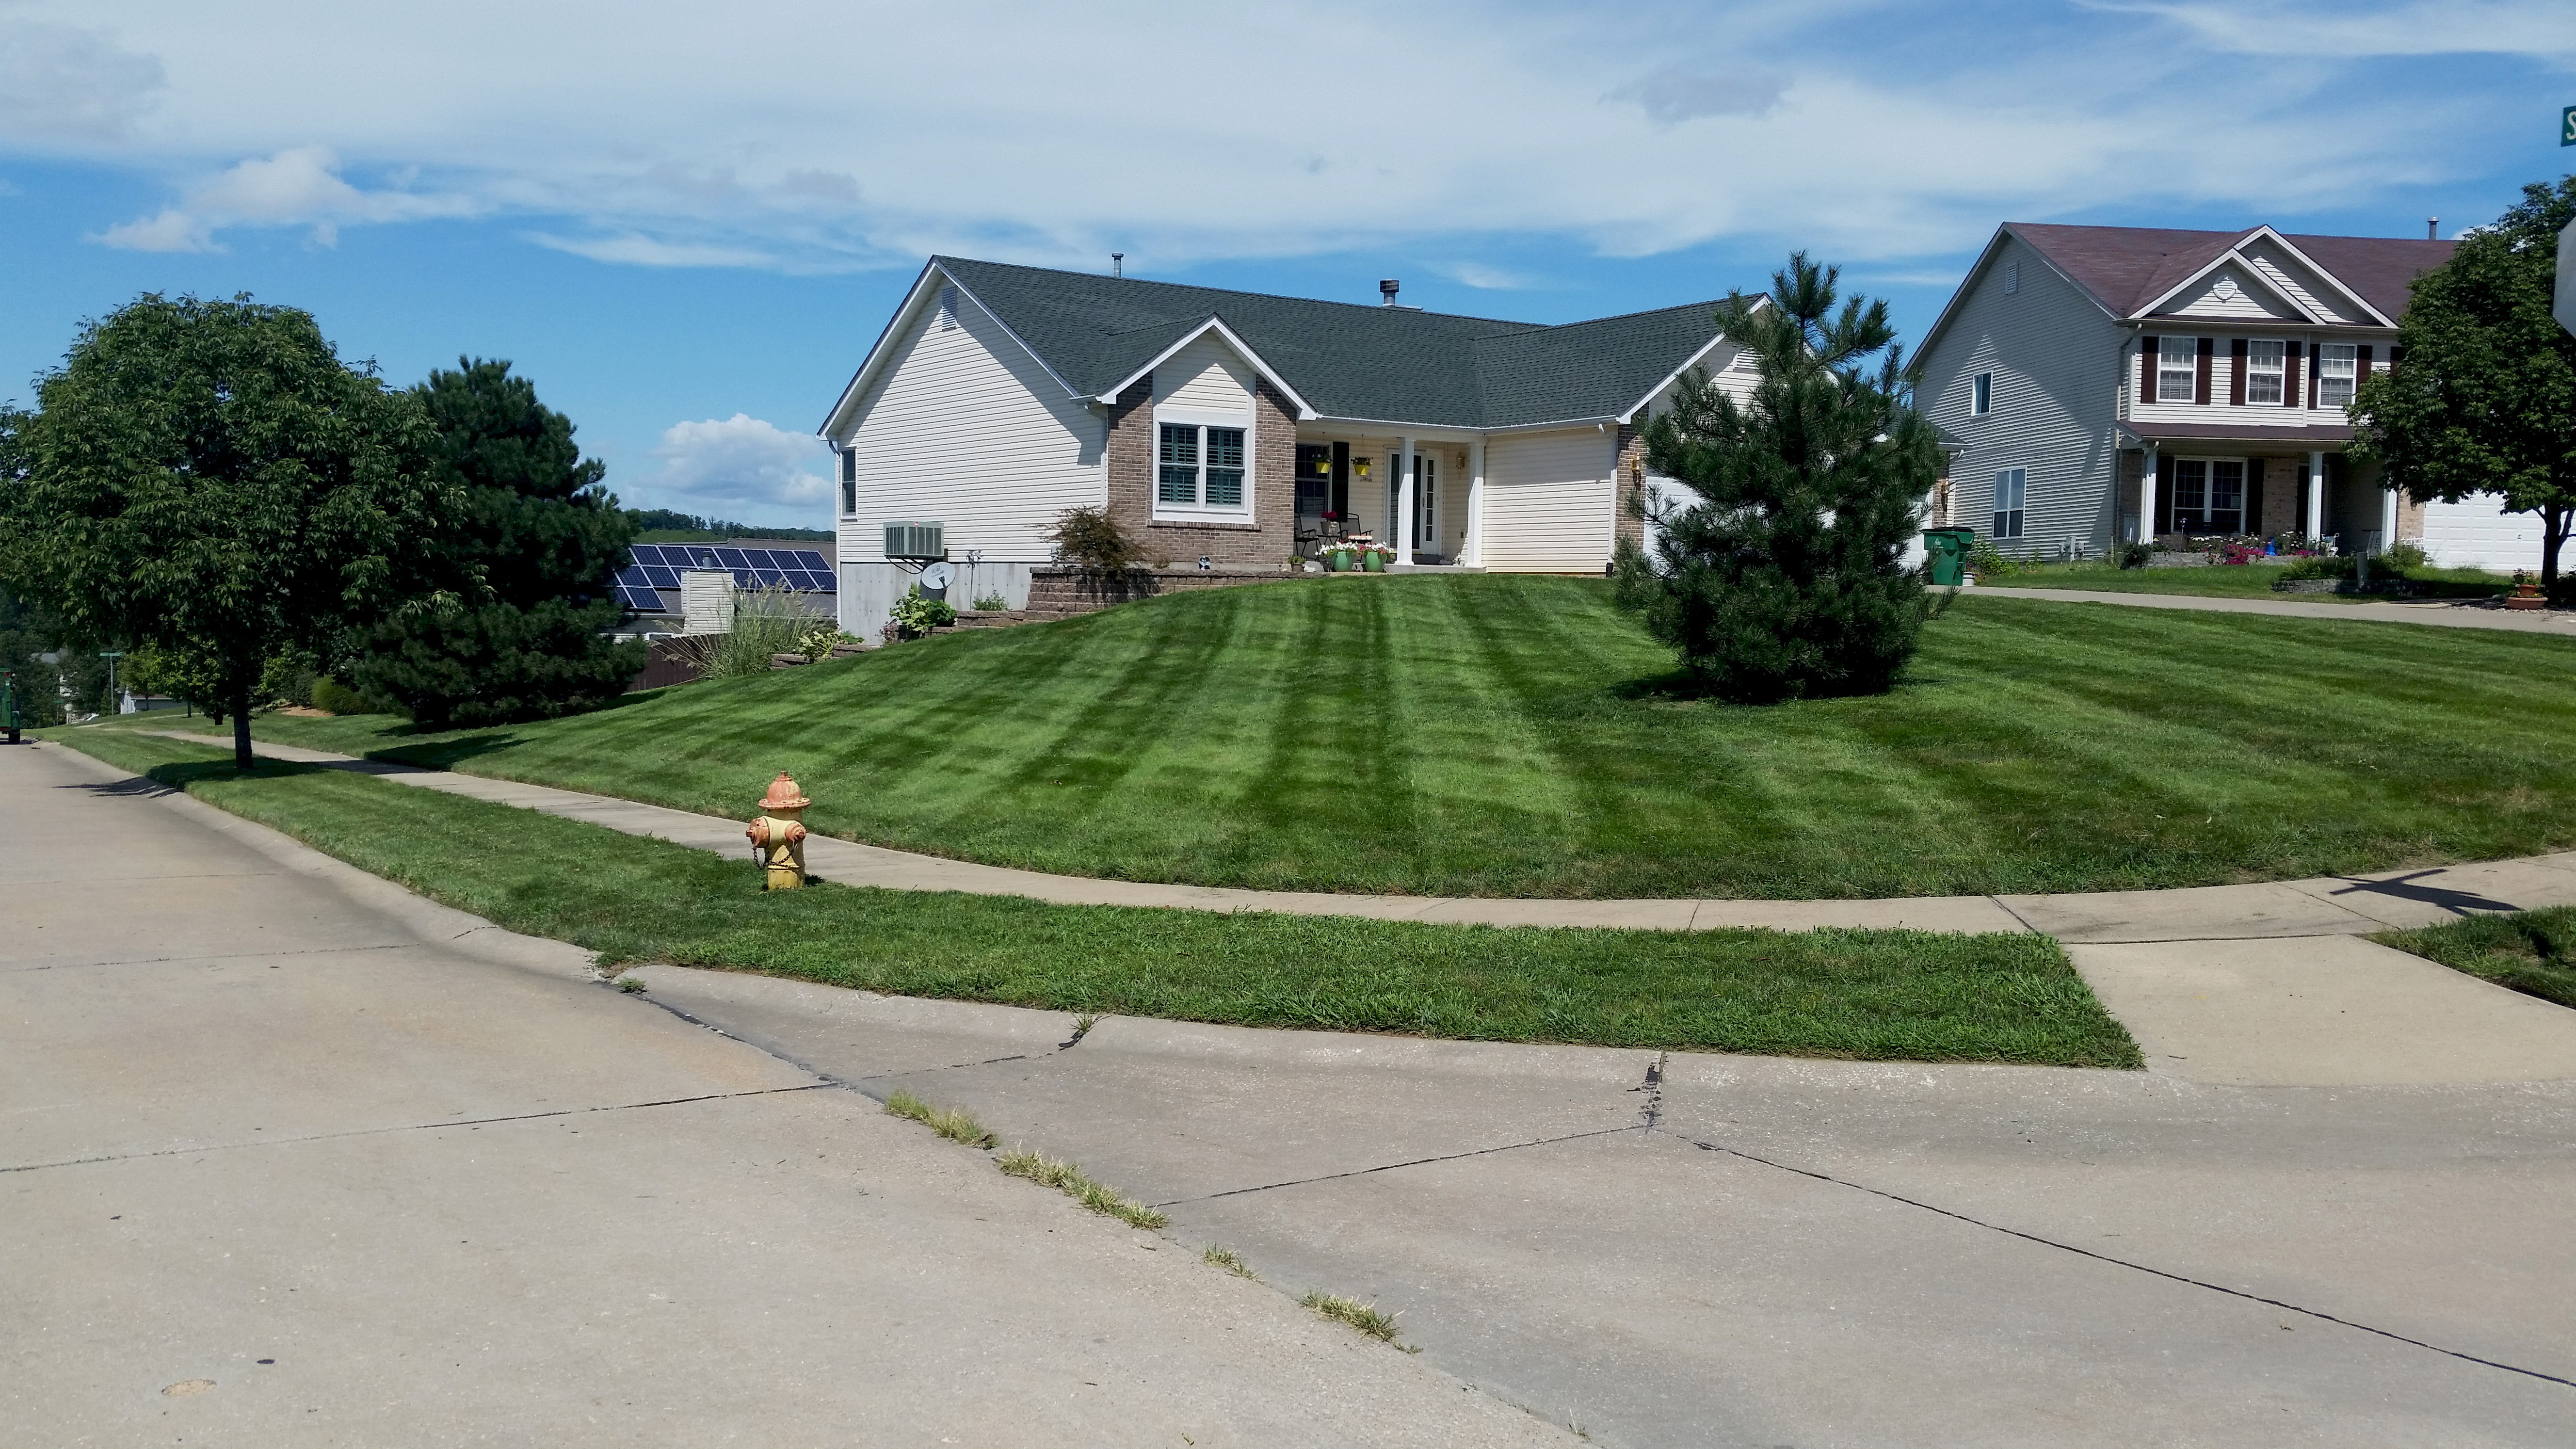 Yard mowing company in Villa Ridge, MO, 63089